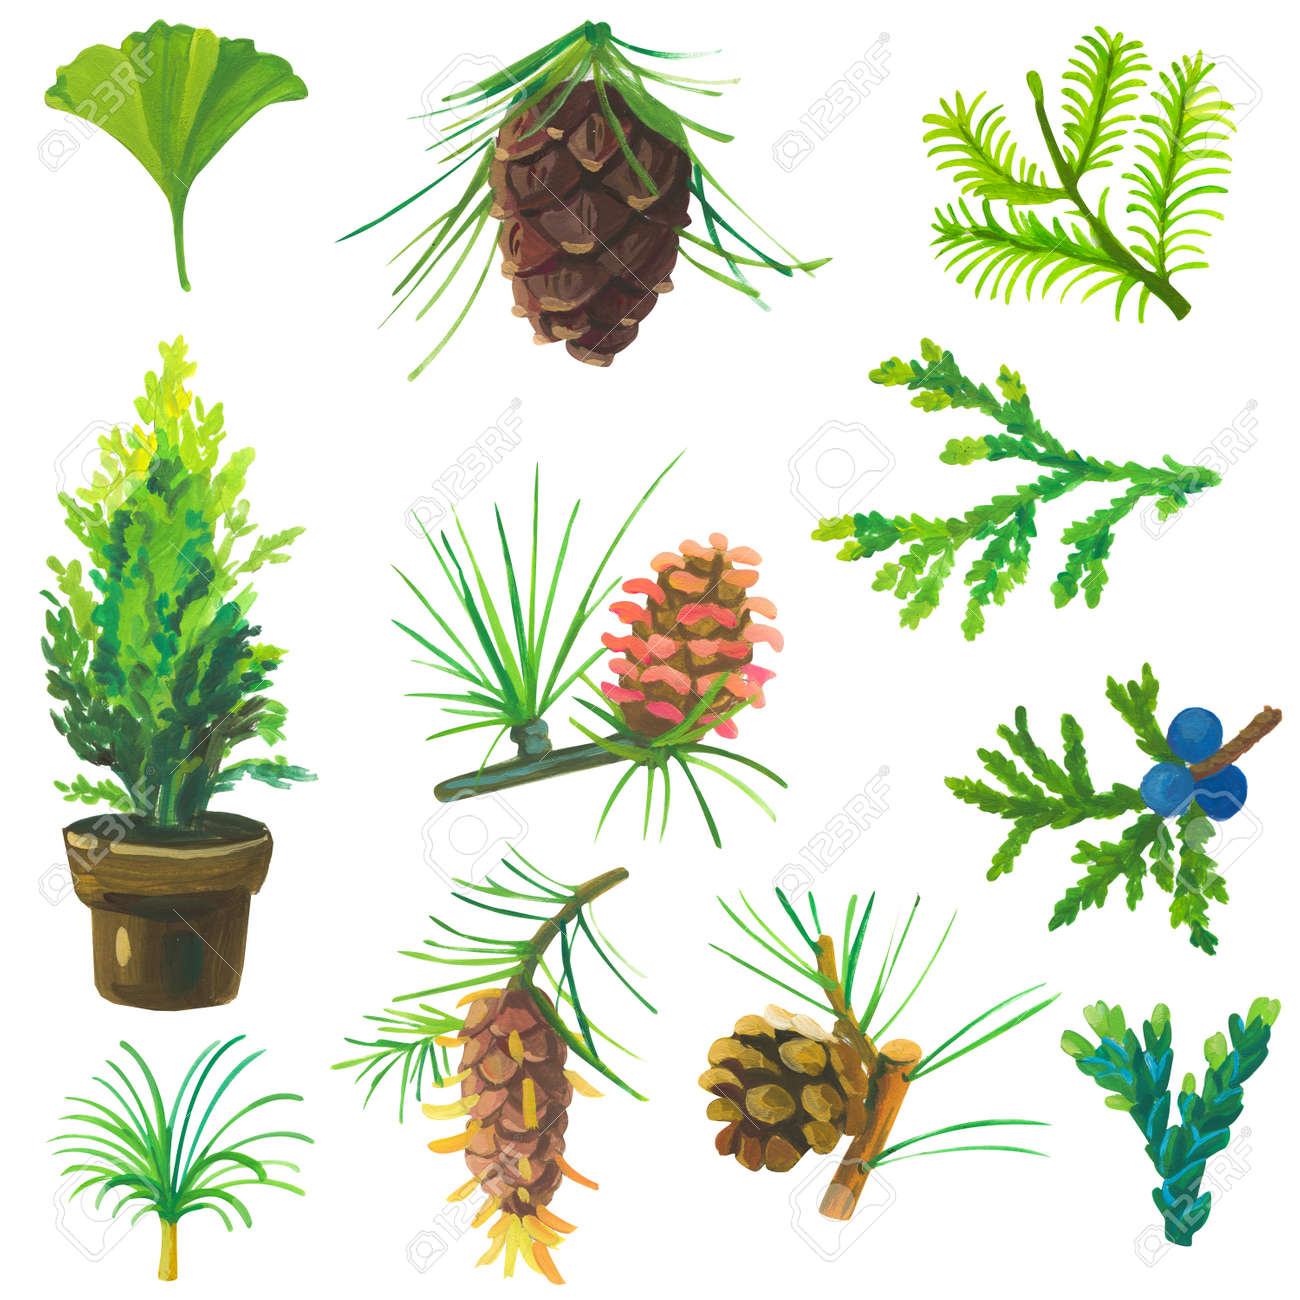 Hand painted acrylic or gouache conifers and cones set on white background - 163875414